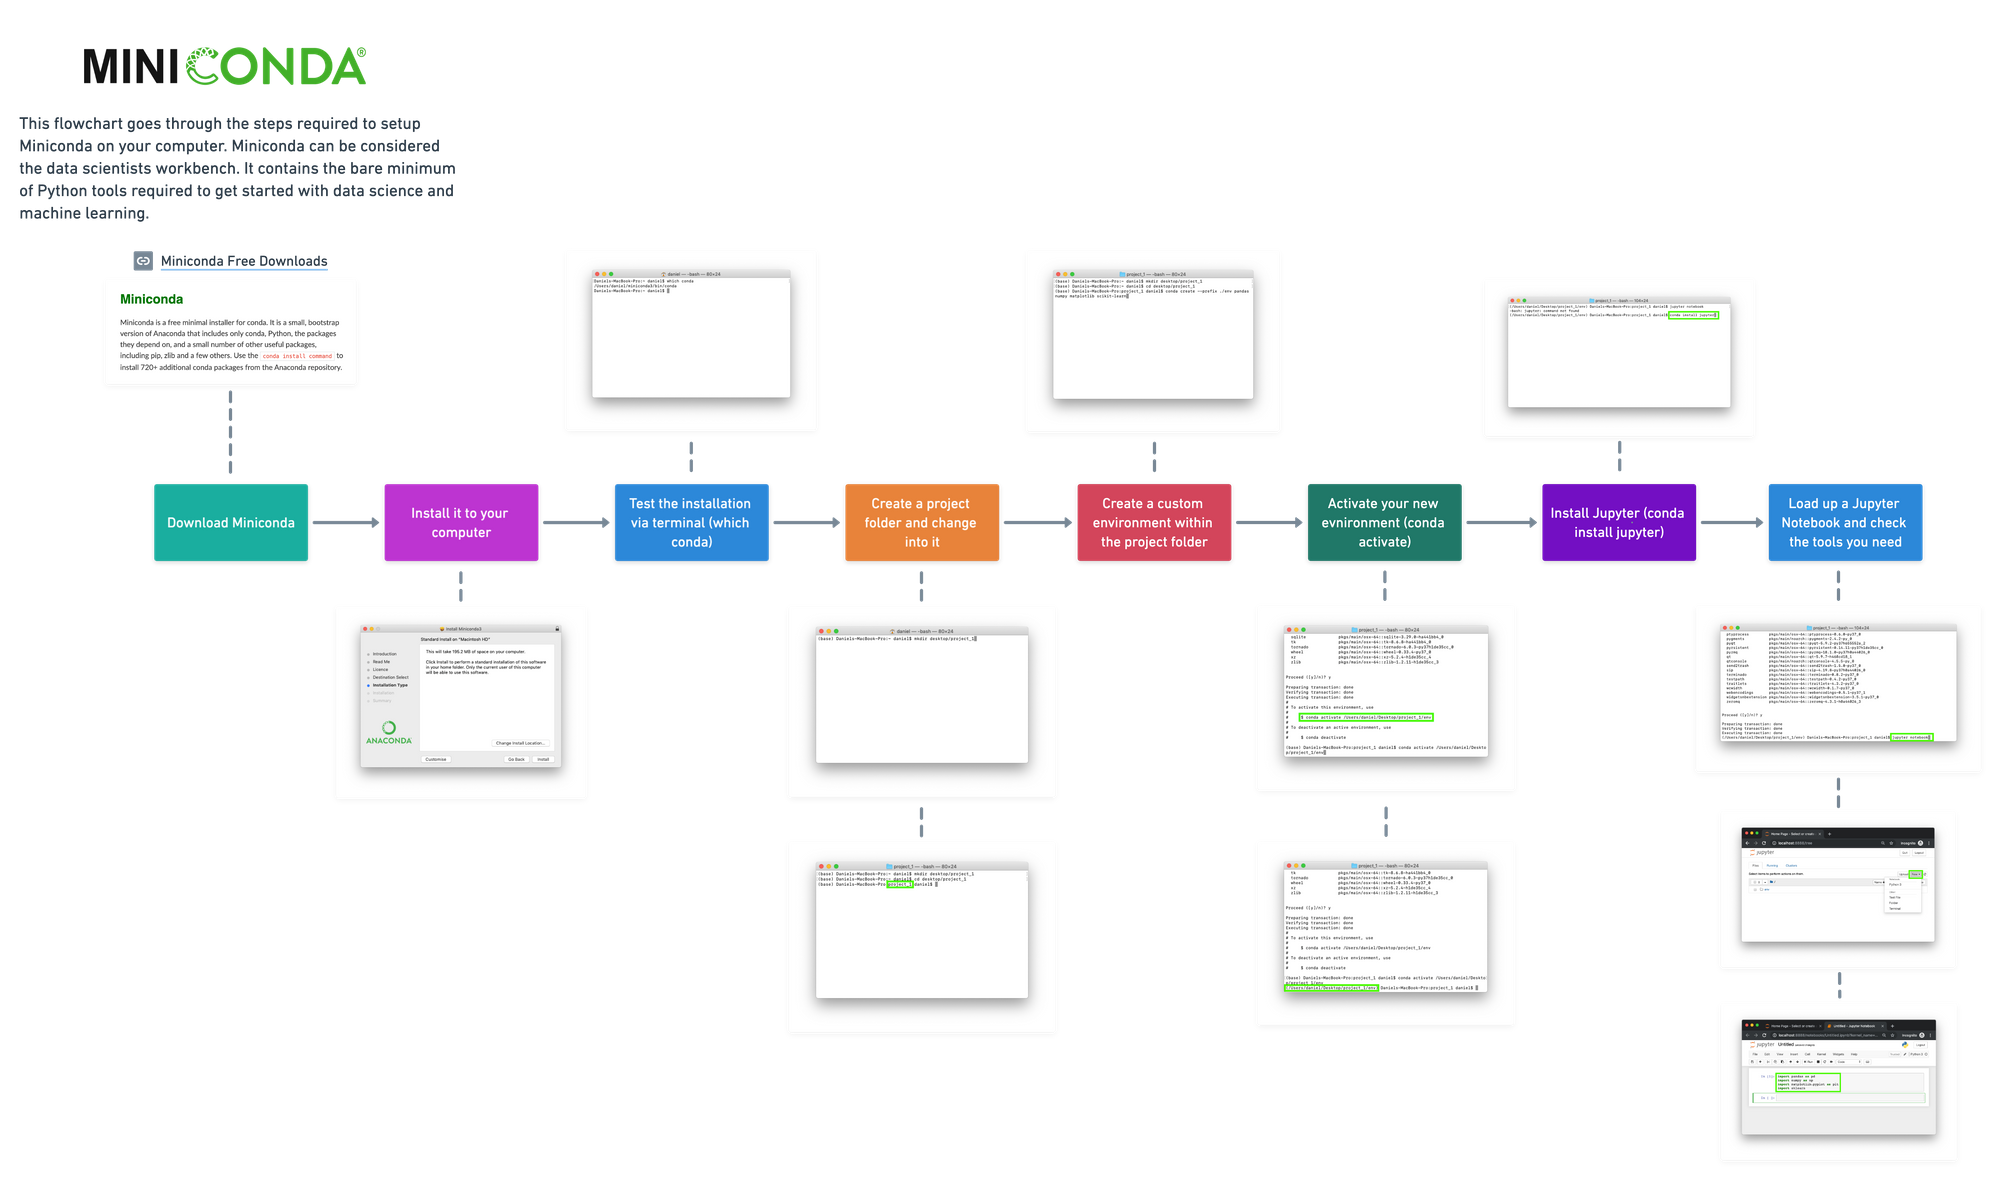 flowchart showing the steps we took to setup Miniconda and a custom environment